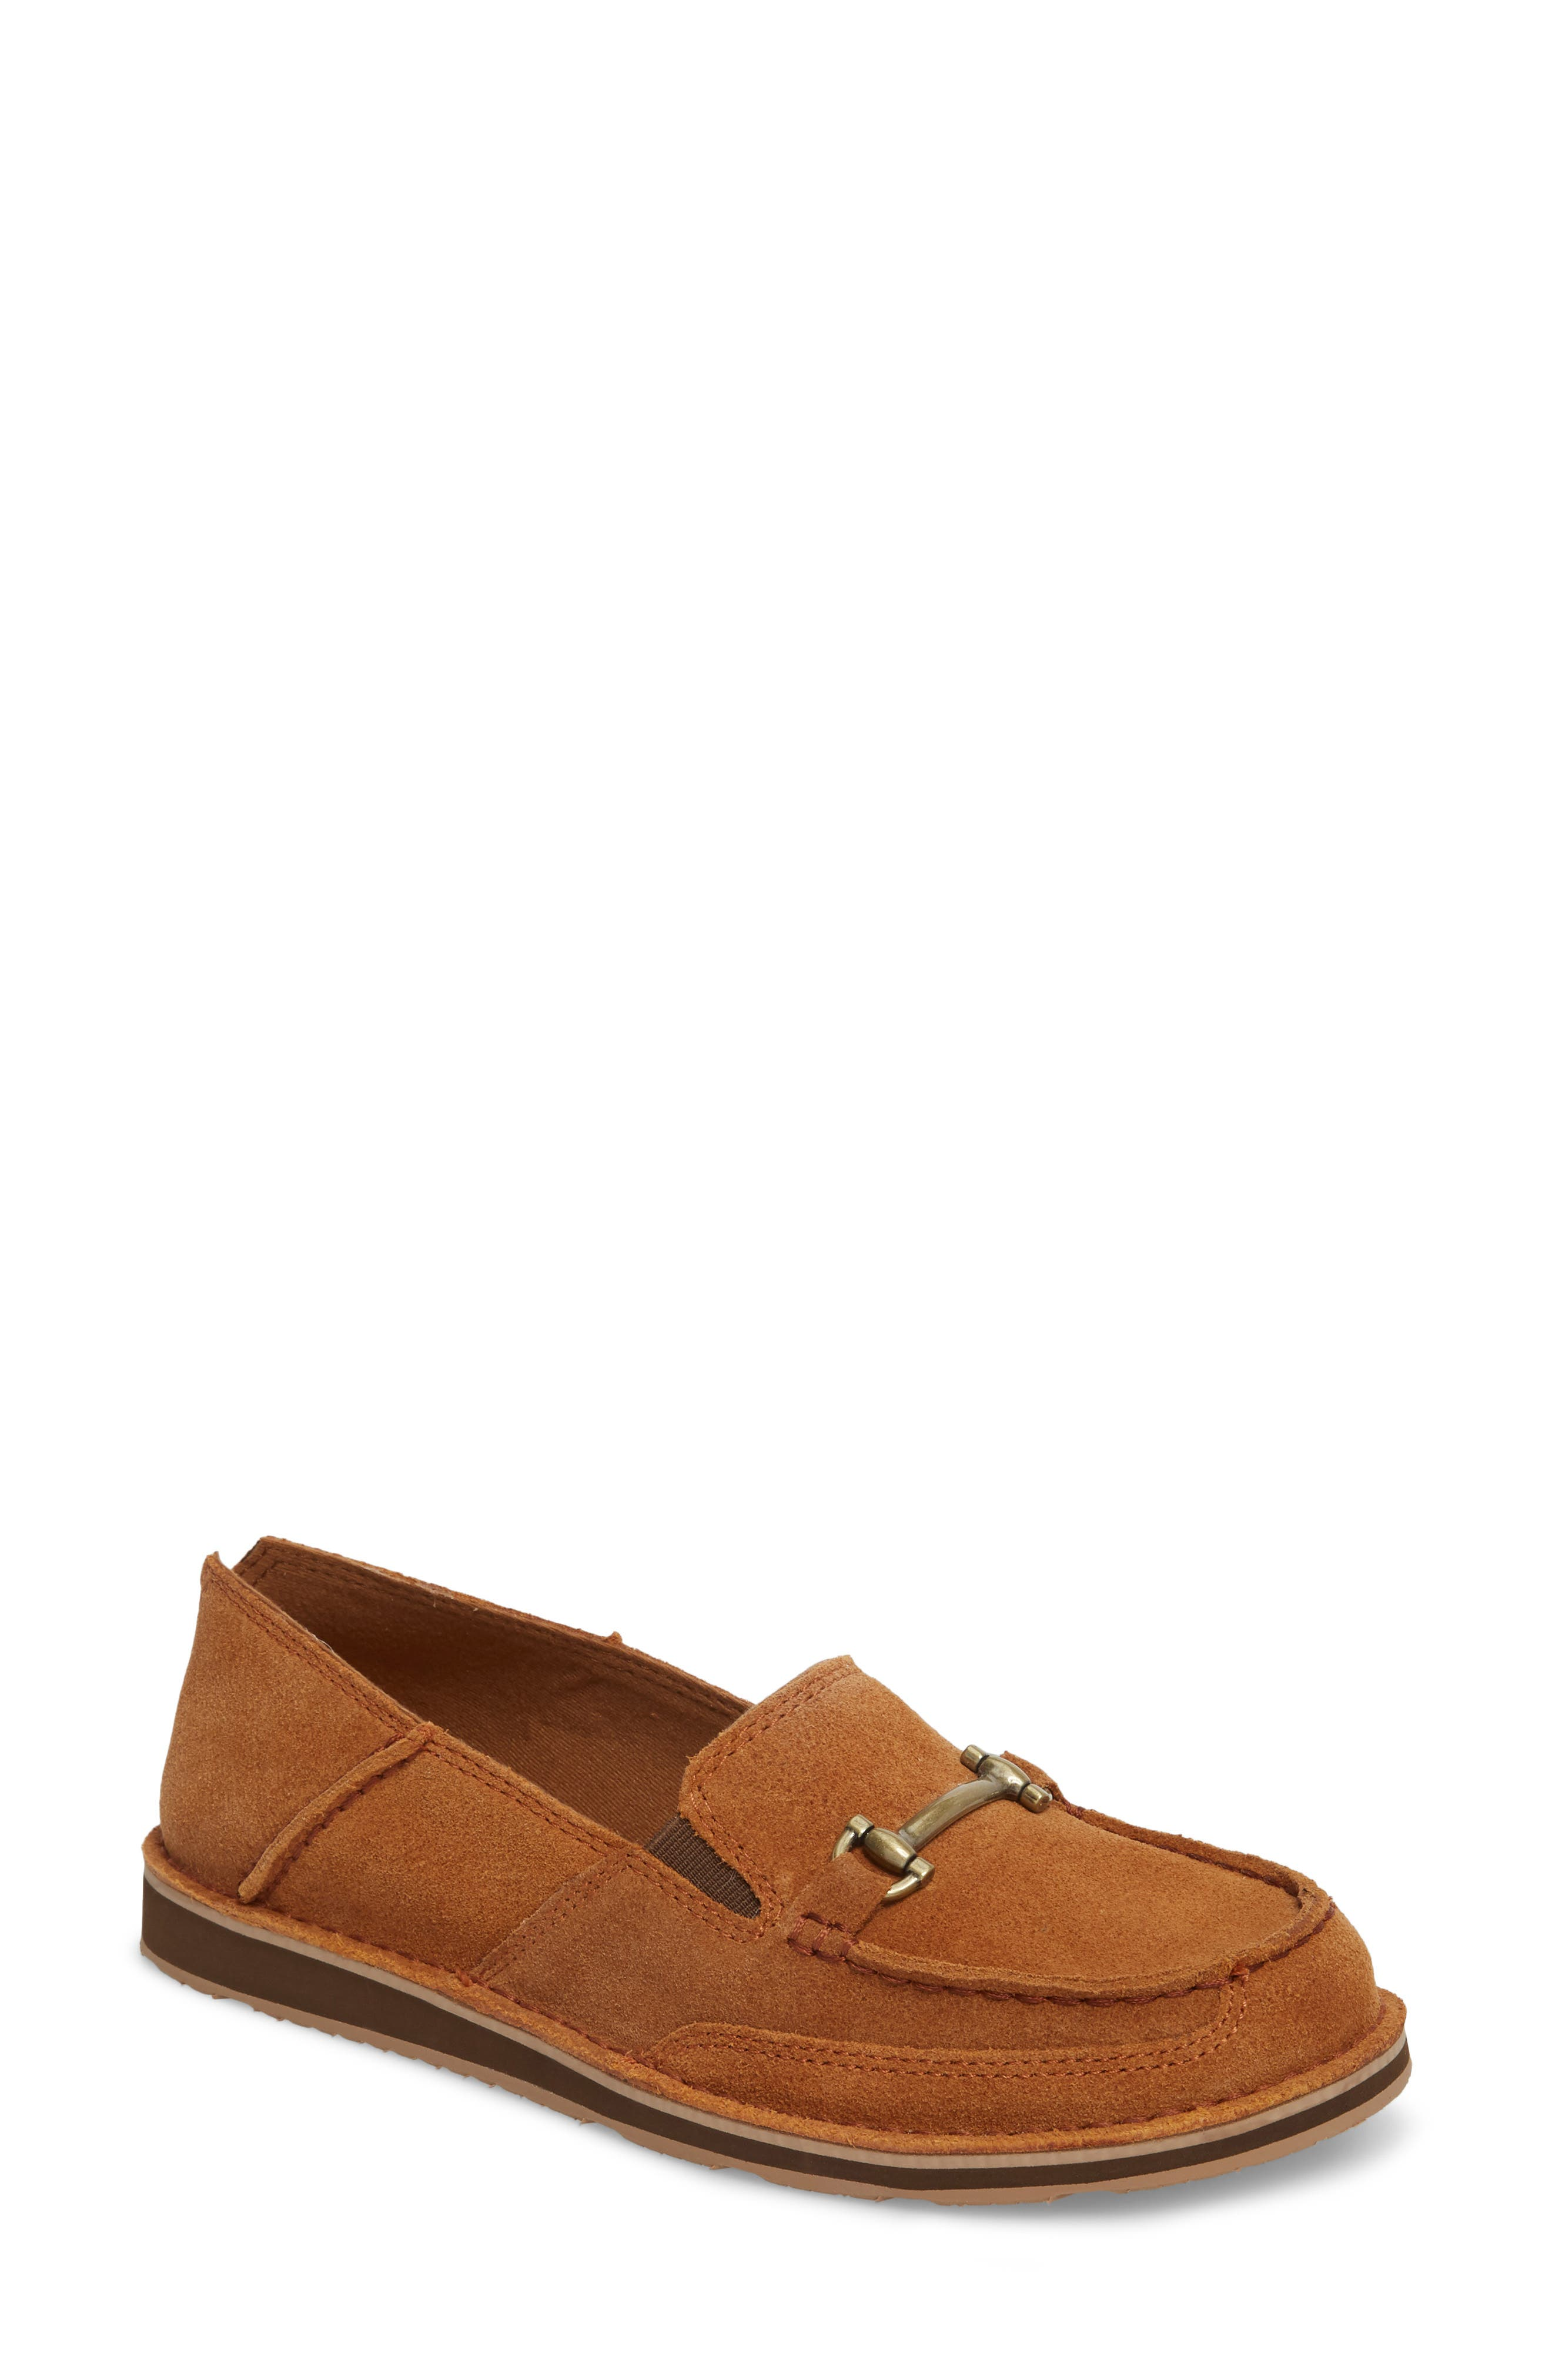 Cruiser Castaway Loafer,                             Main thumbnail 1, color,                             CRUISER CHESTNUT SUEDE